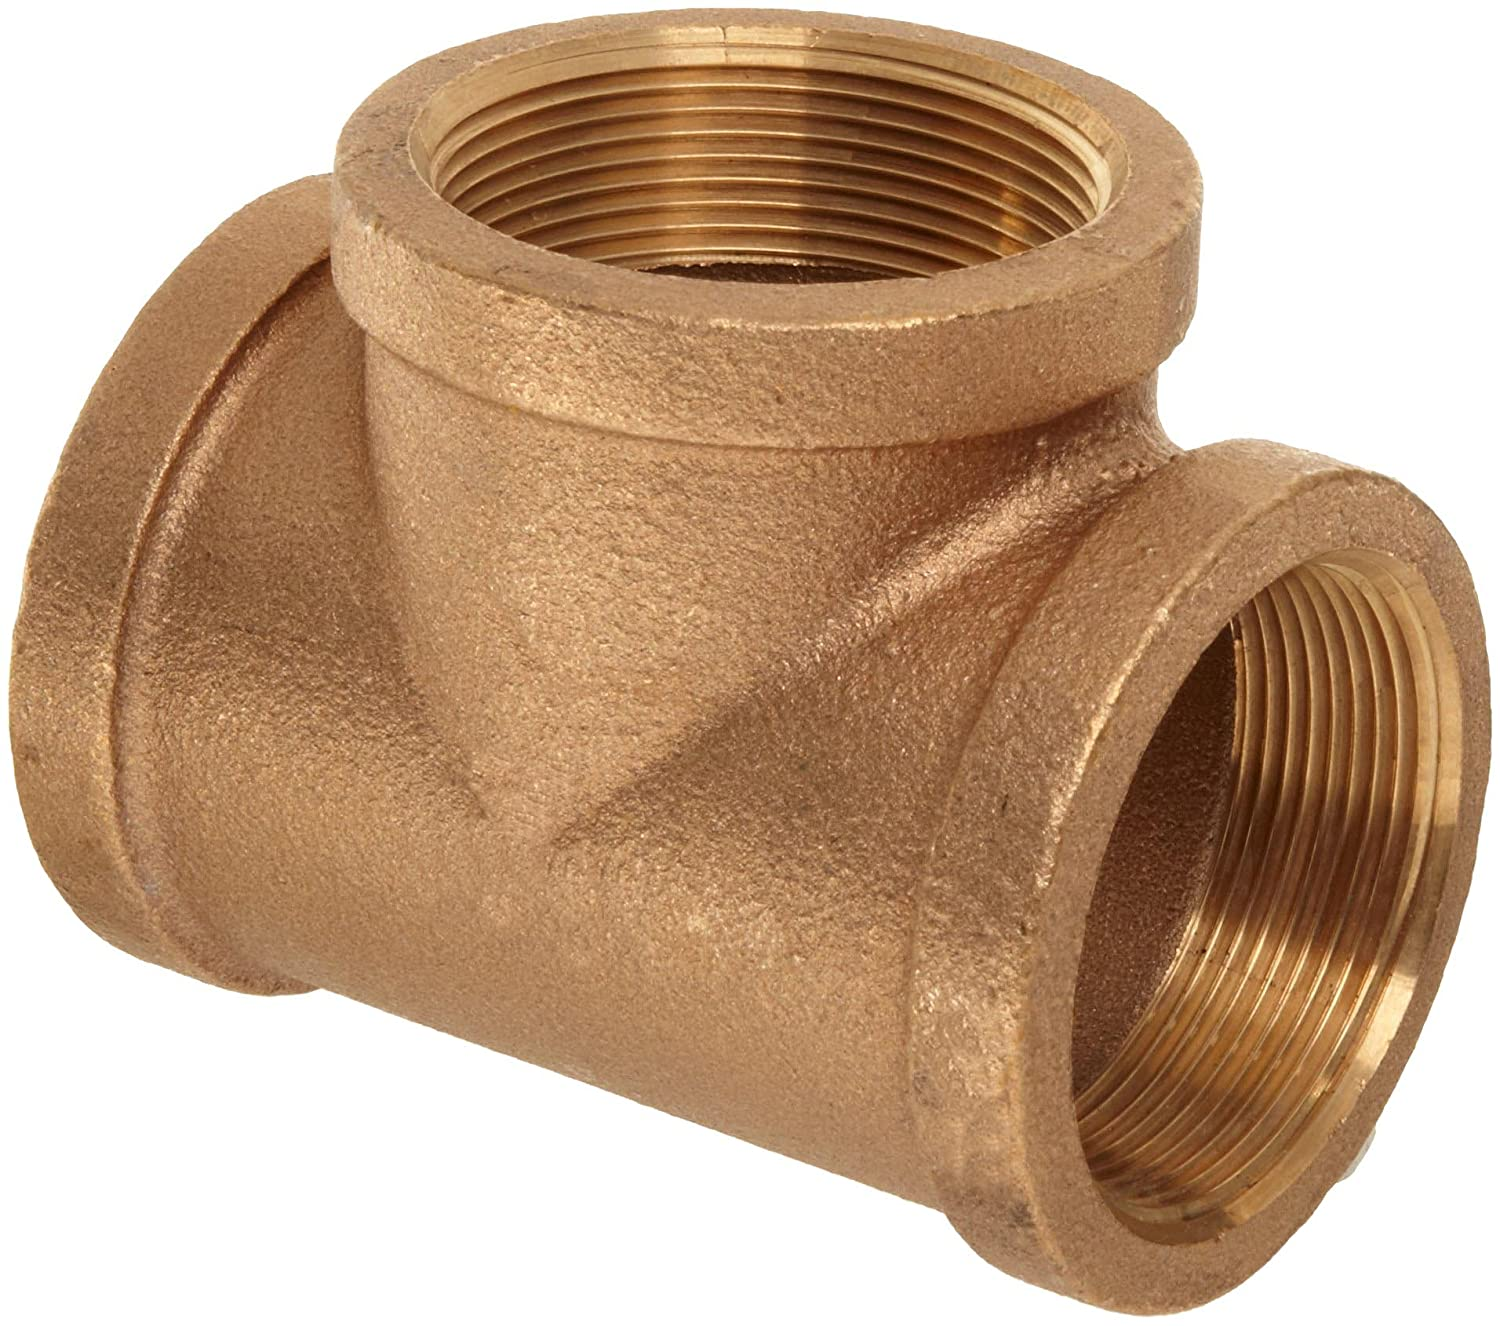 Pipe Tee 3//4 inch Female Thread Fittings Connector Brass NPT